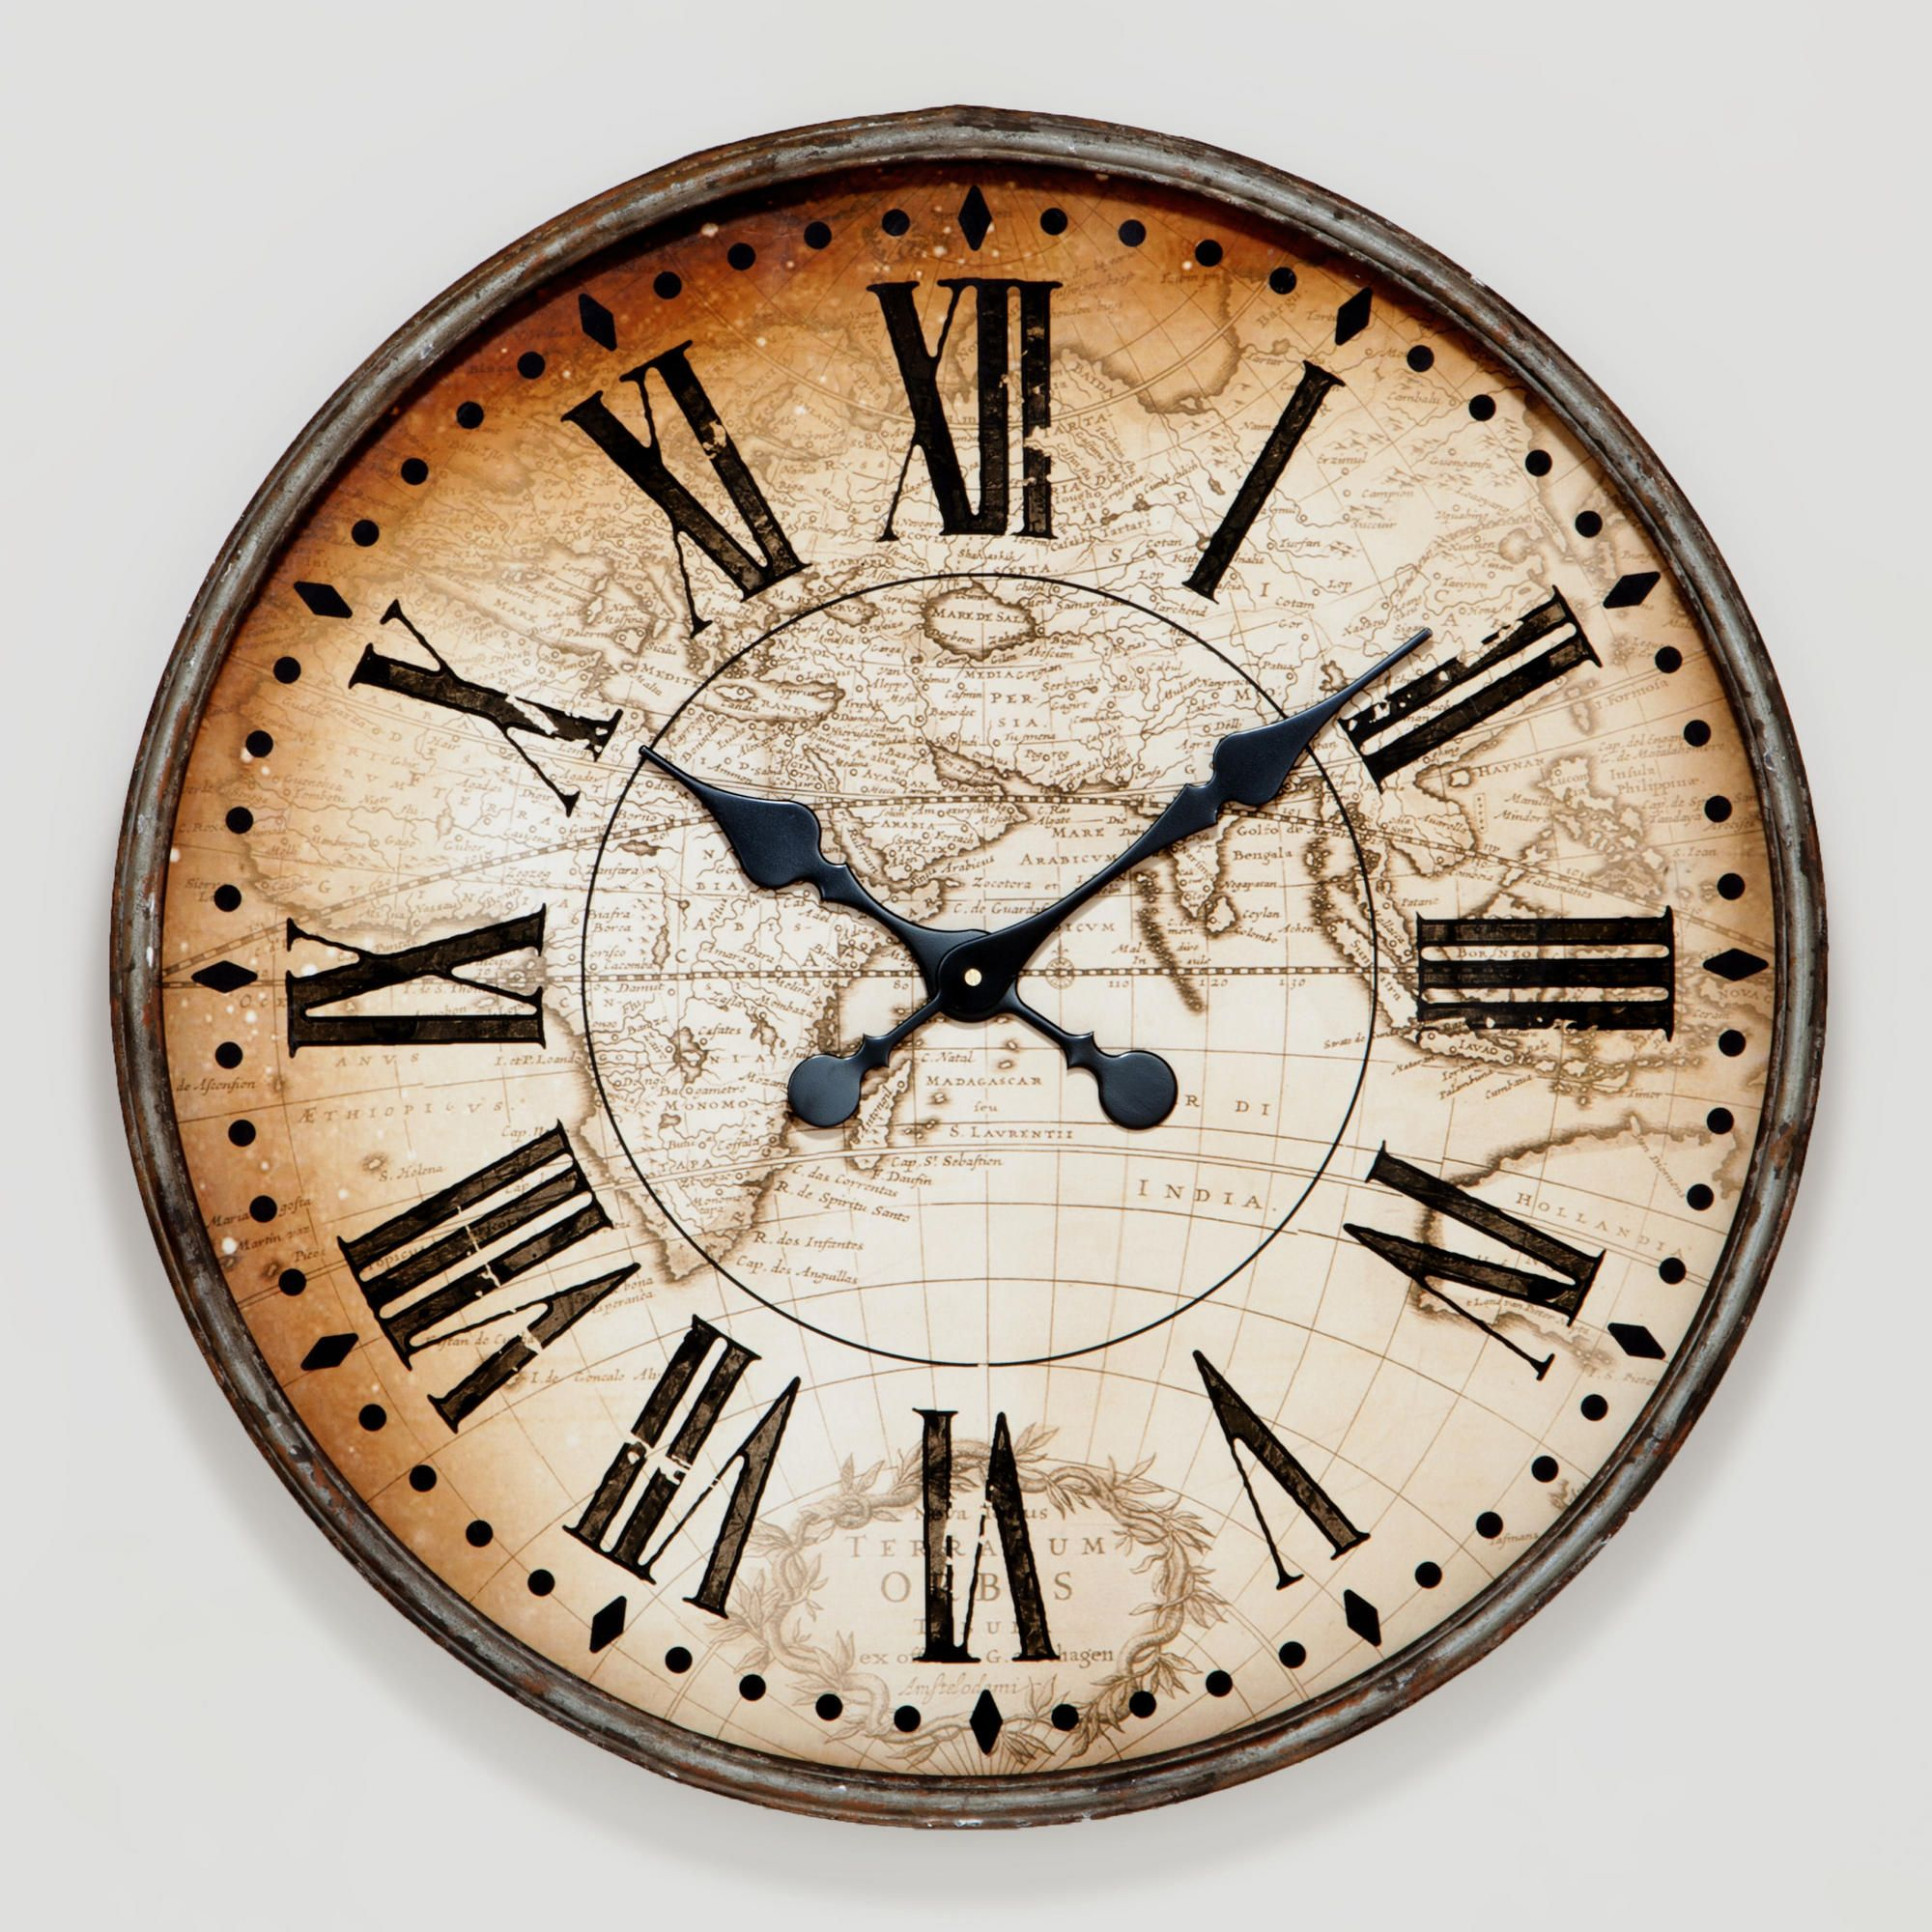 World clock world market a clock and a map brilliant i love world clock world market a clock and a map brilliant gumiabroncs Image collections